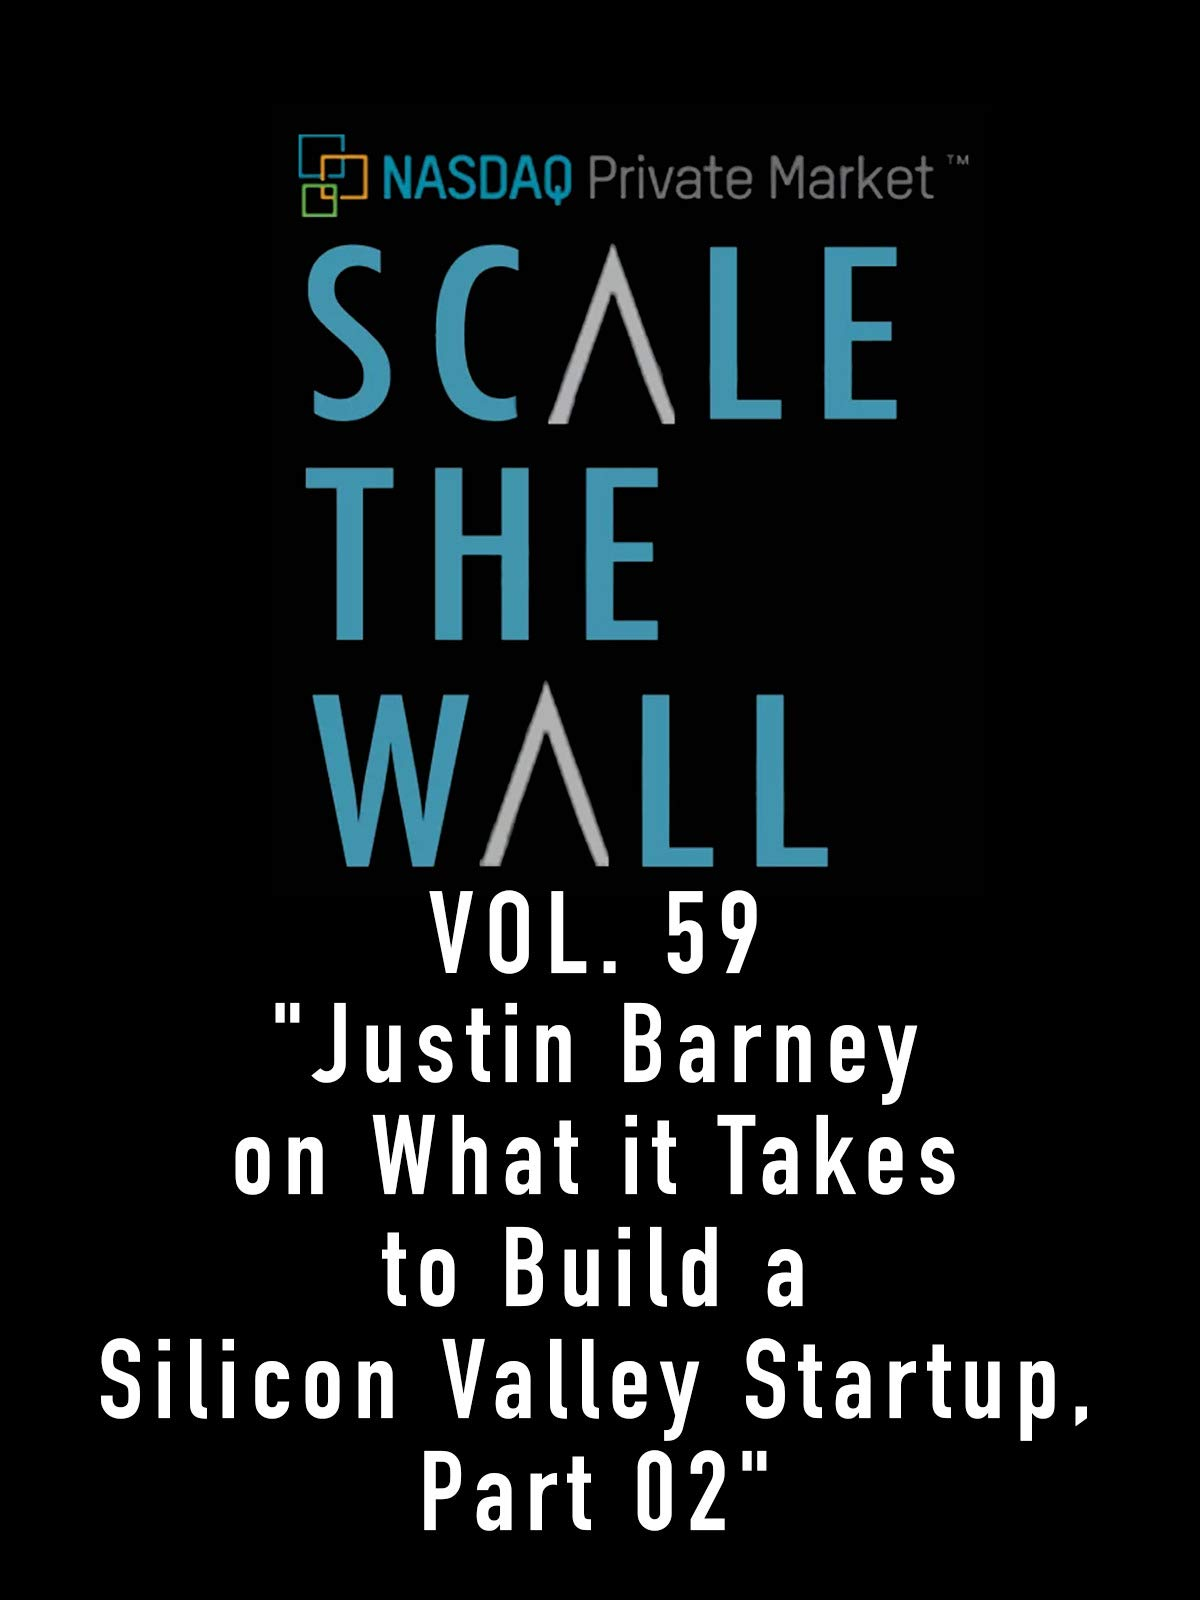 Scale The Wall Vol. 59